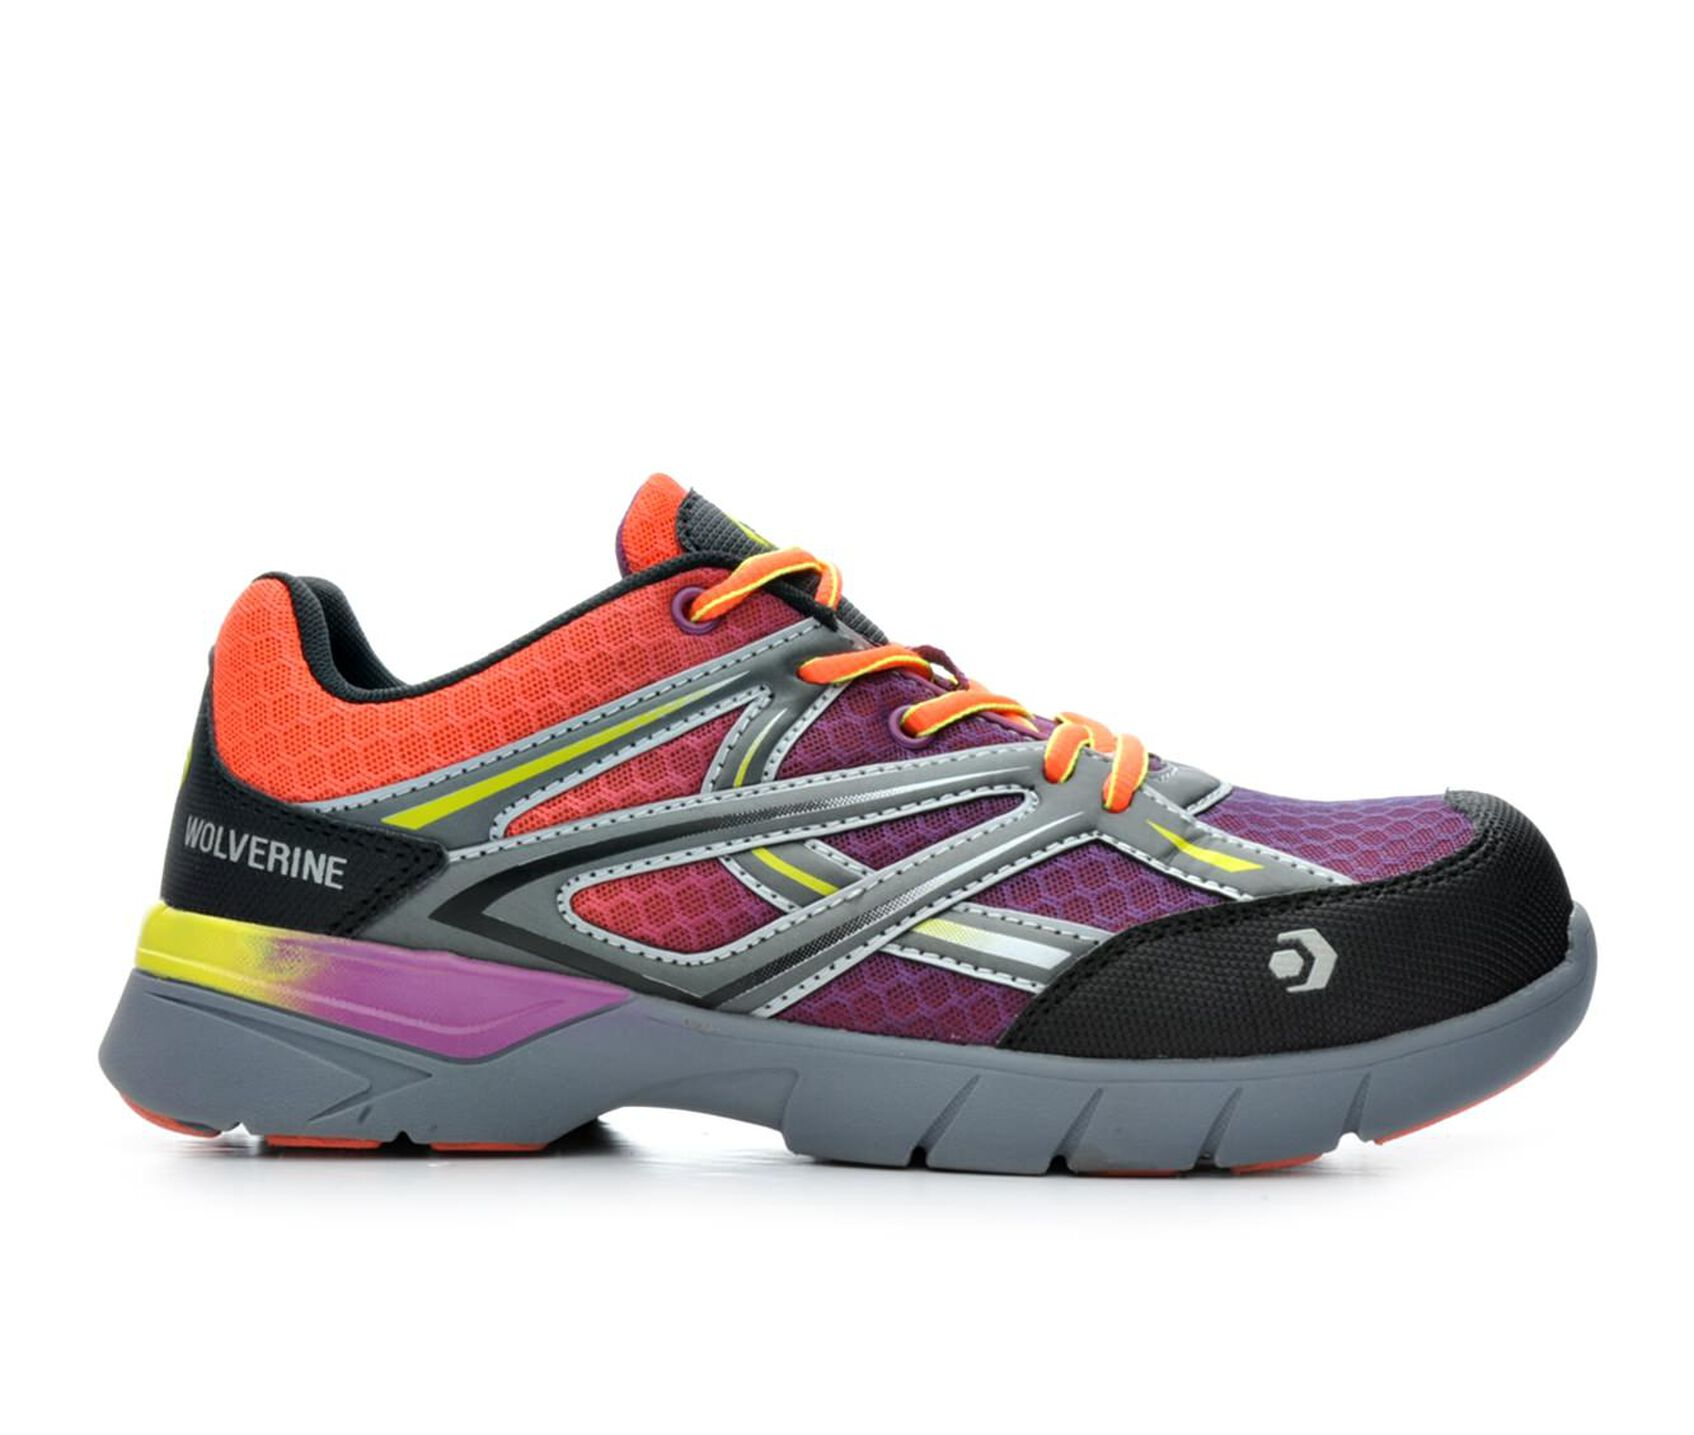 wolverine women Wolverine womens sale: save up to 50% off shop shoescom's huge selection of wolverine womens for women - over 20 styles available free.